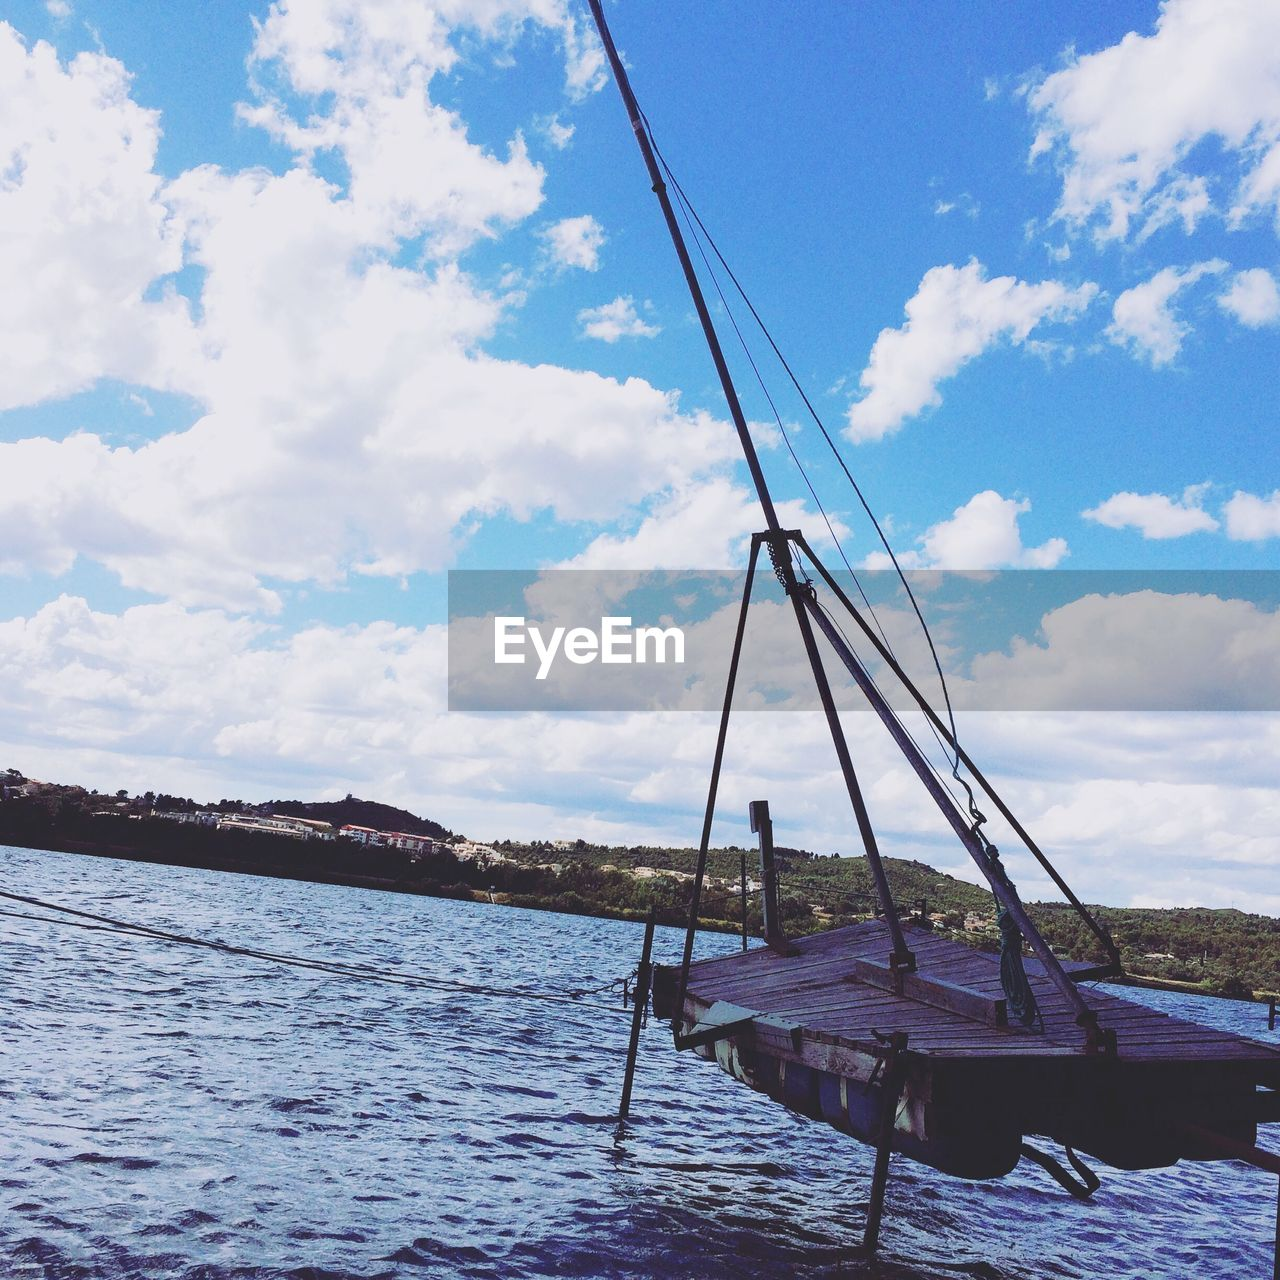 sky, cloud - sky, mode of transport, transportation, nautical vessel, day, outdoors, no people, water, nature, scenics, beauty in nature